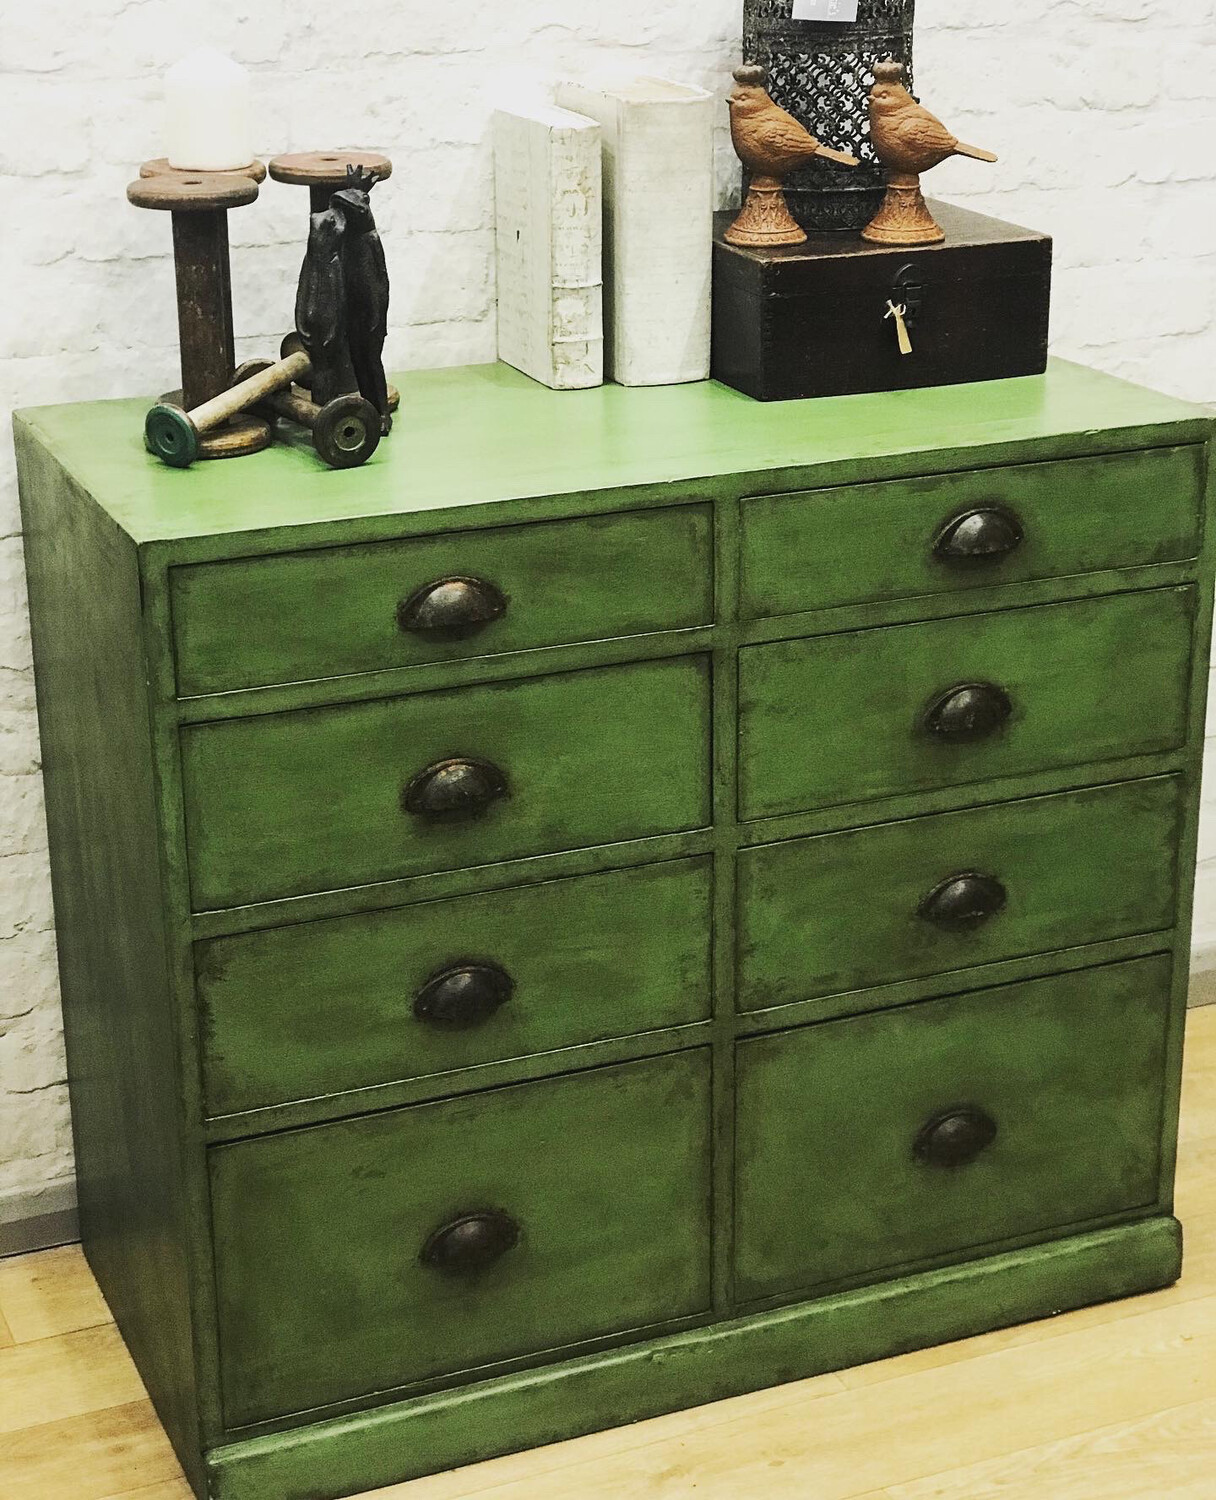 Vintage Industrial Style Drawers - Hand Painted